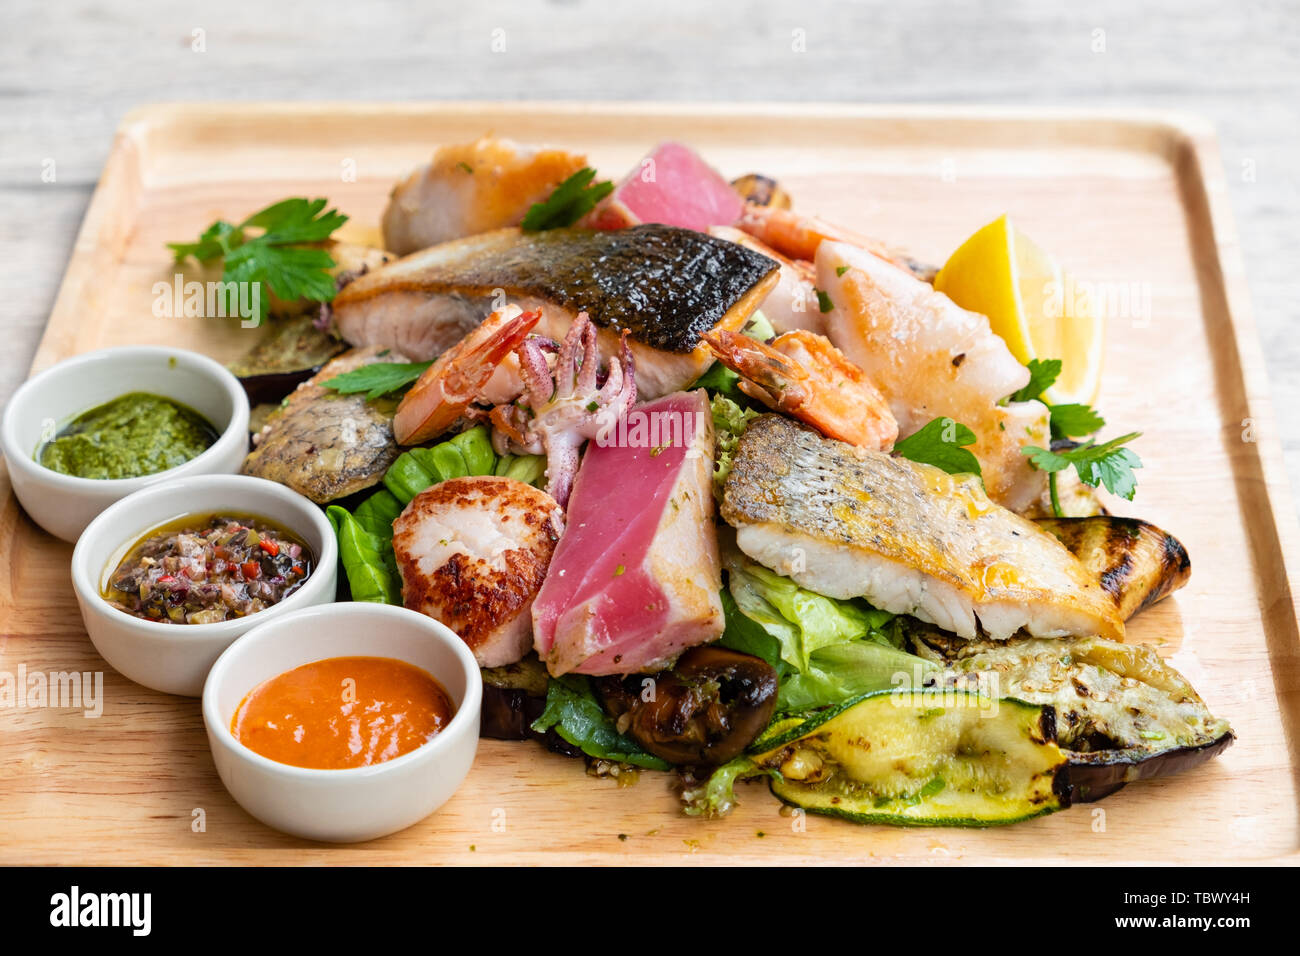 Close Up Of A Mixed Grilled Seafood And Fish Platter On A Wooden Board Salmon Tuna Calamari Scallop Prawn Clams Mussels Vegetable Lemon Spi Stock Photo Alamy